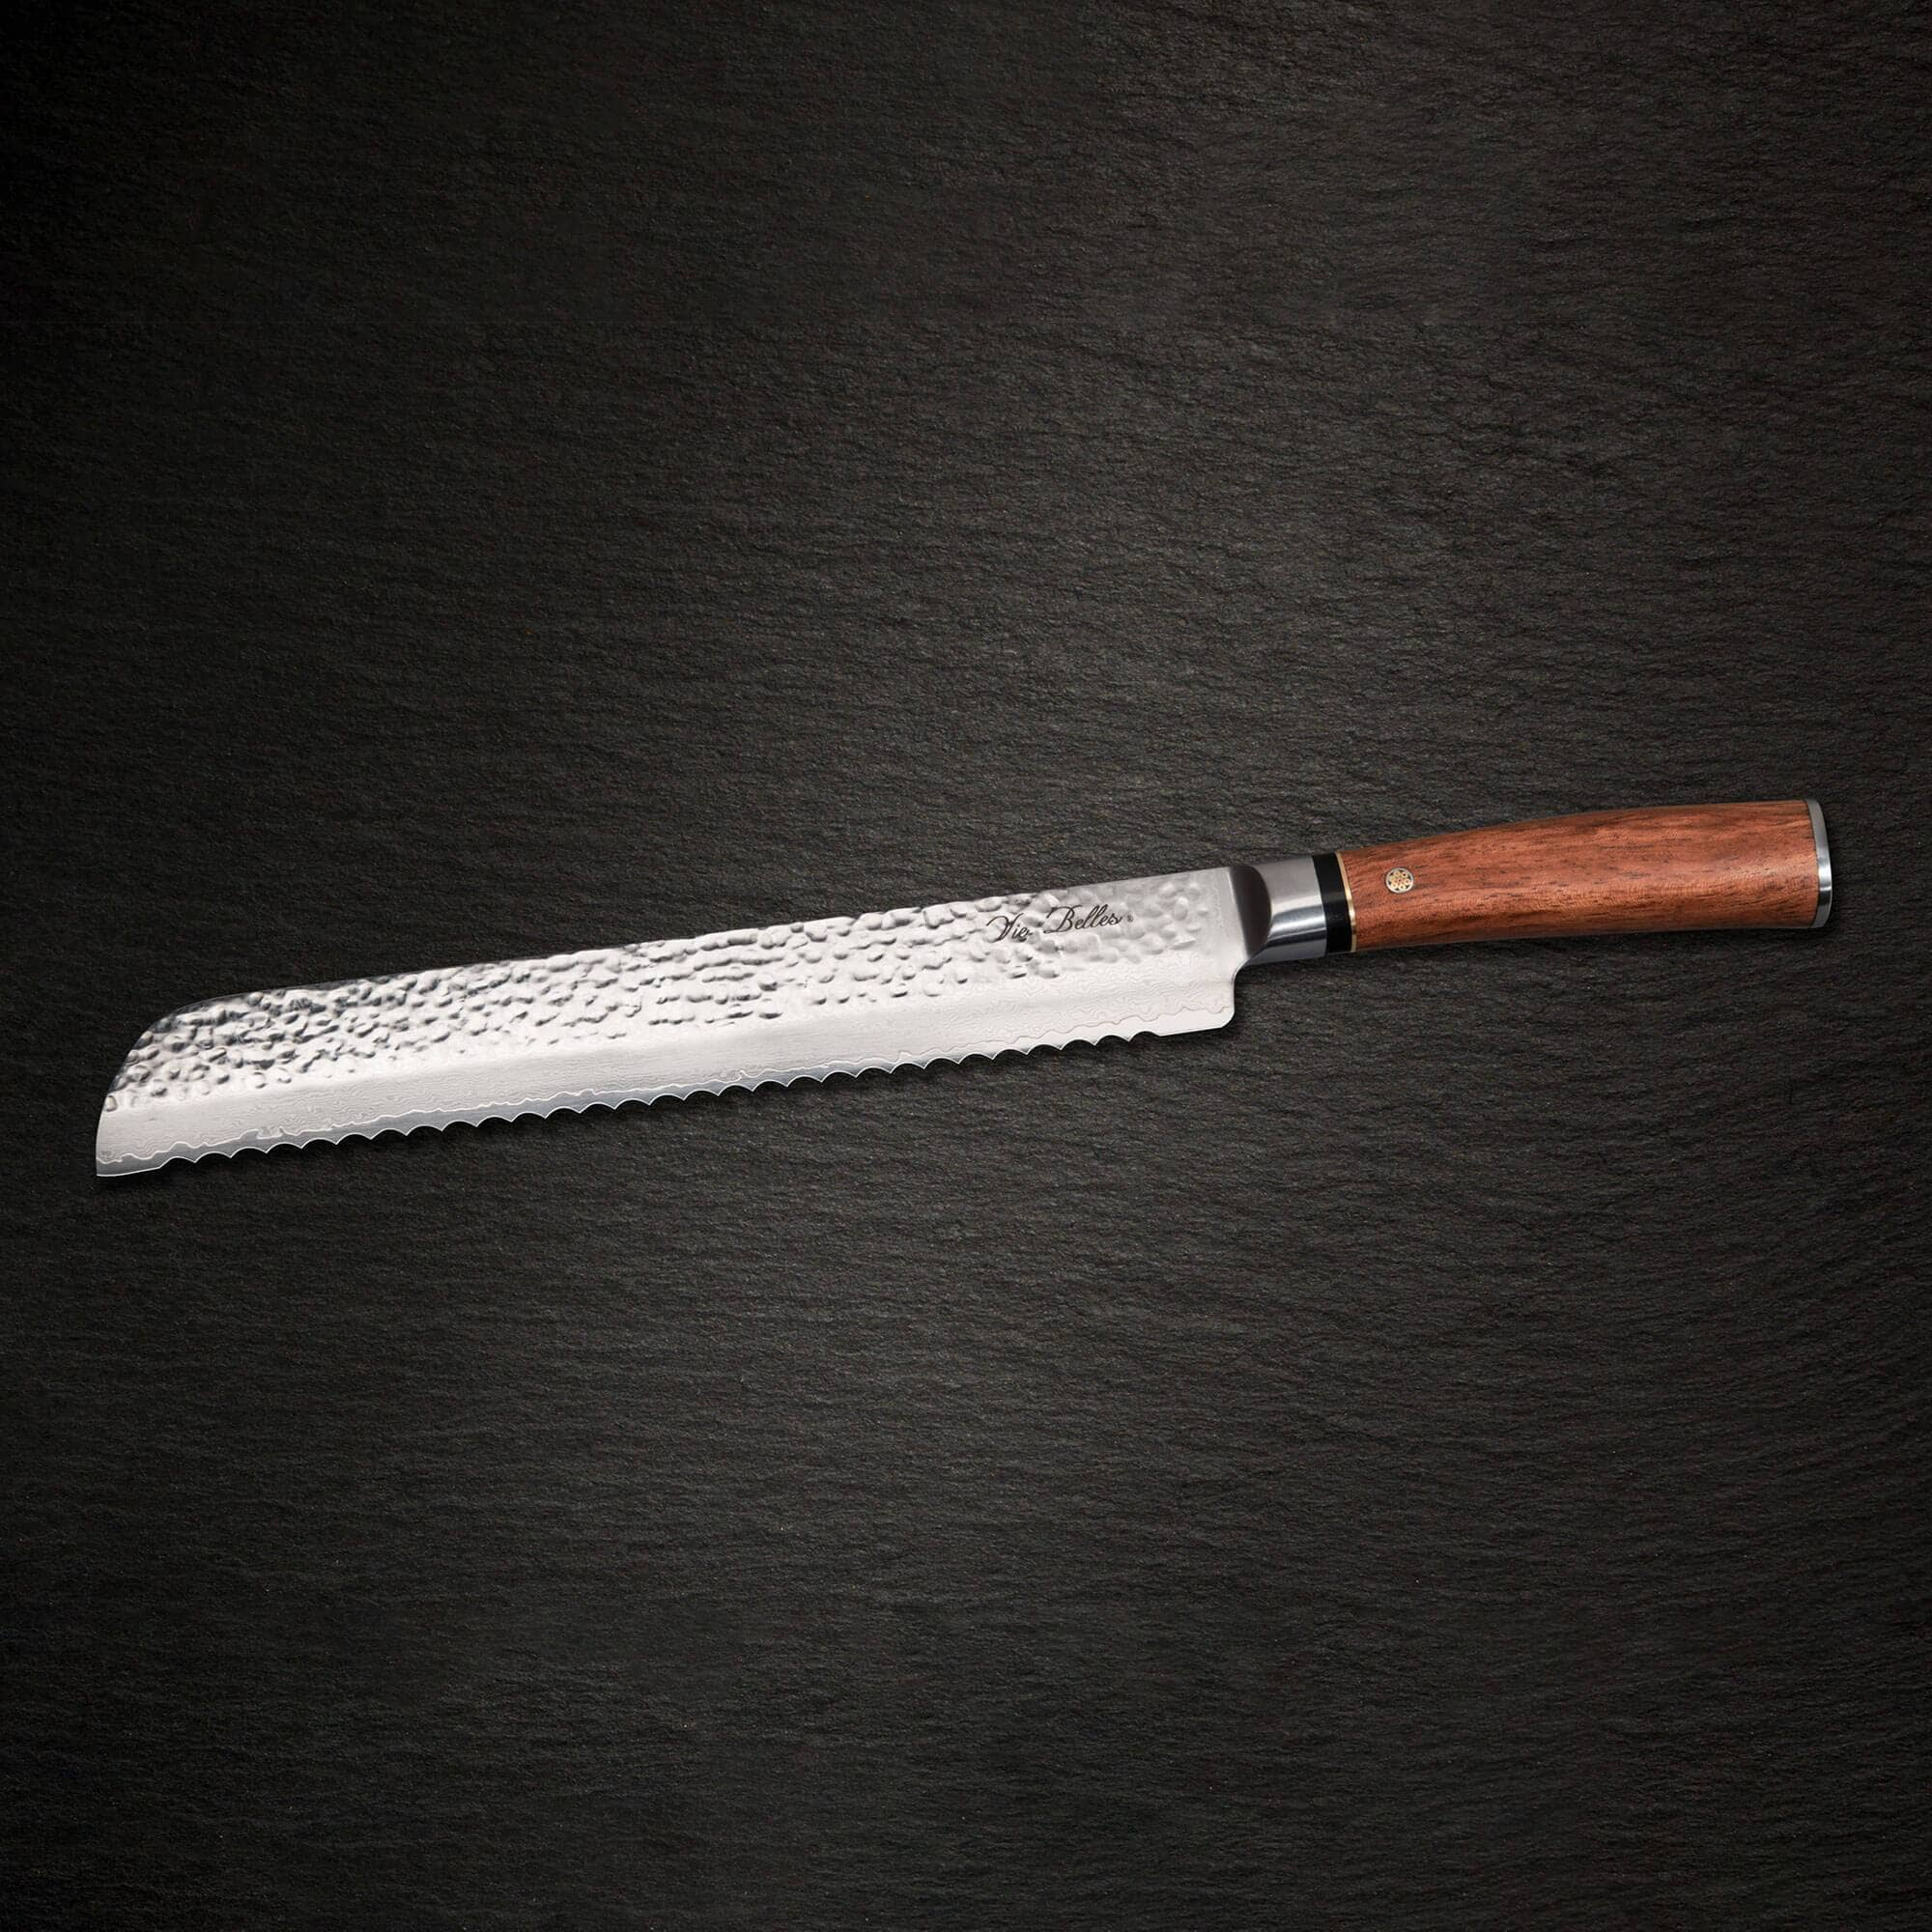 Serrated Bread Knife